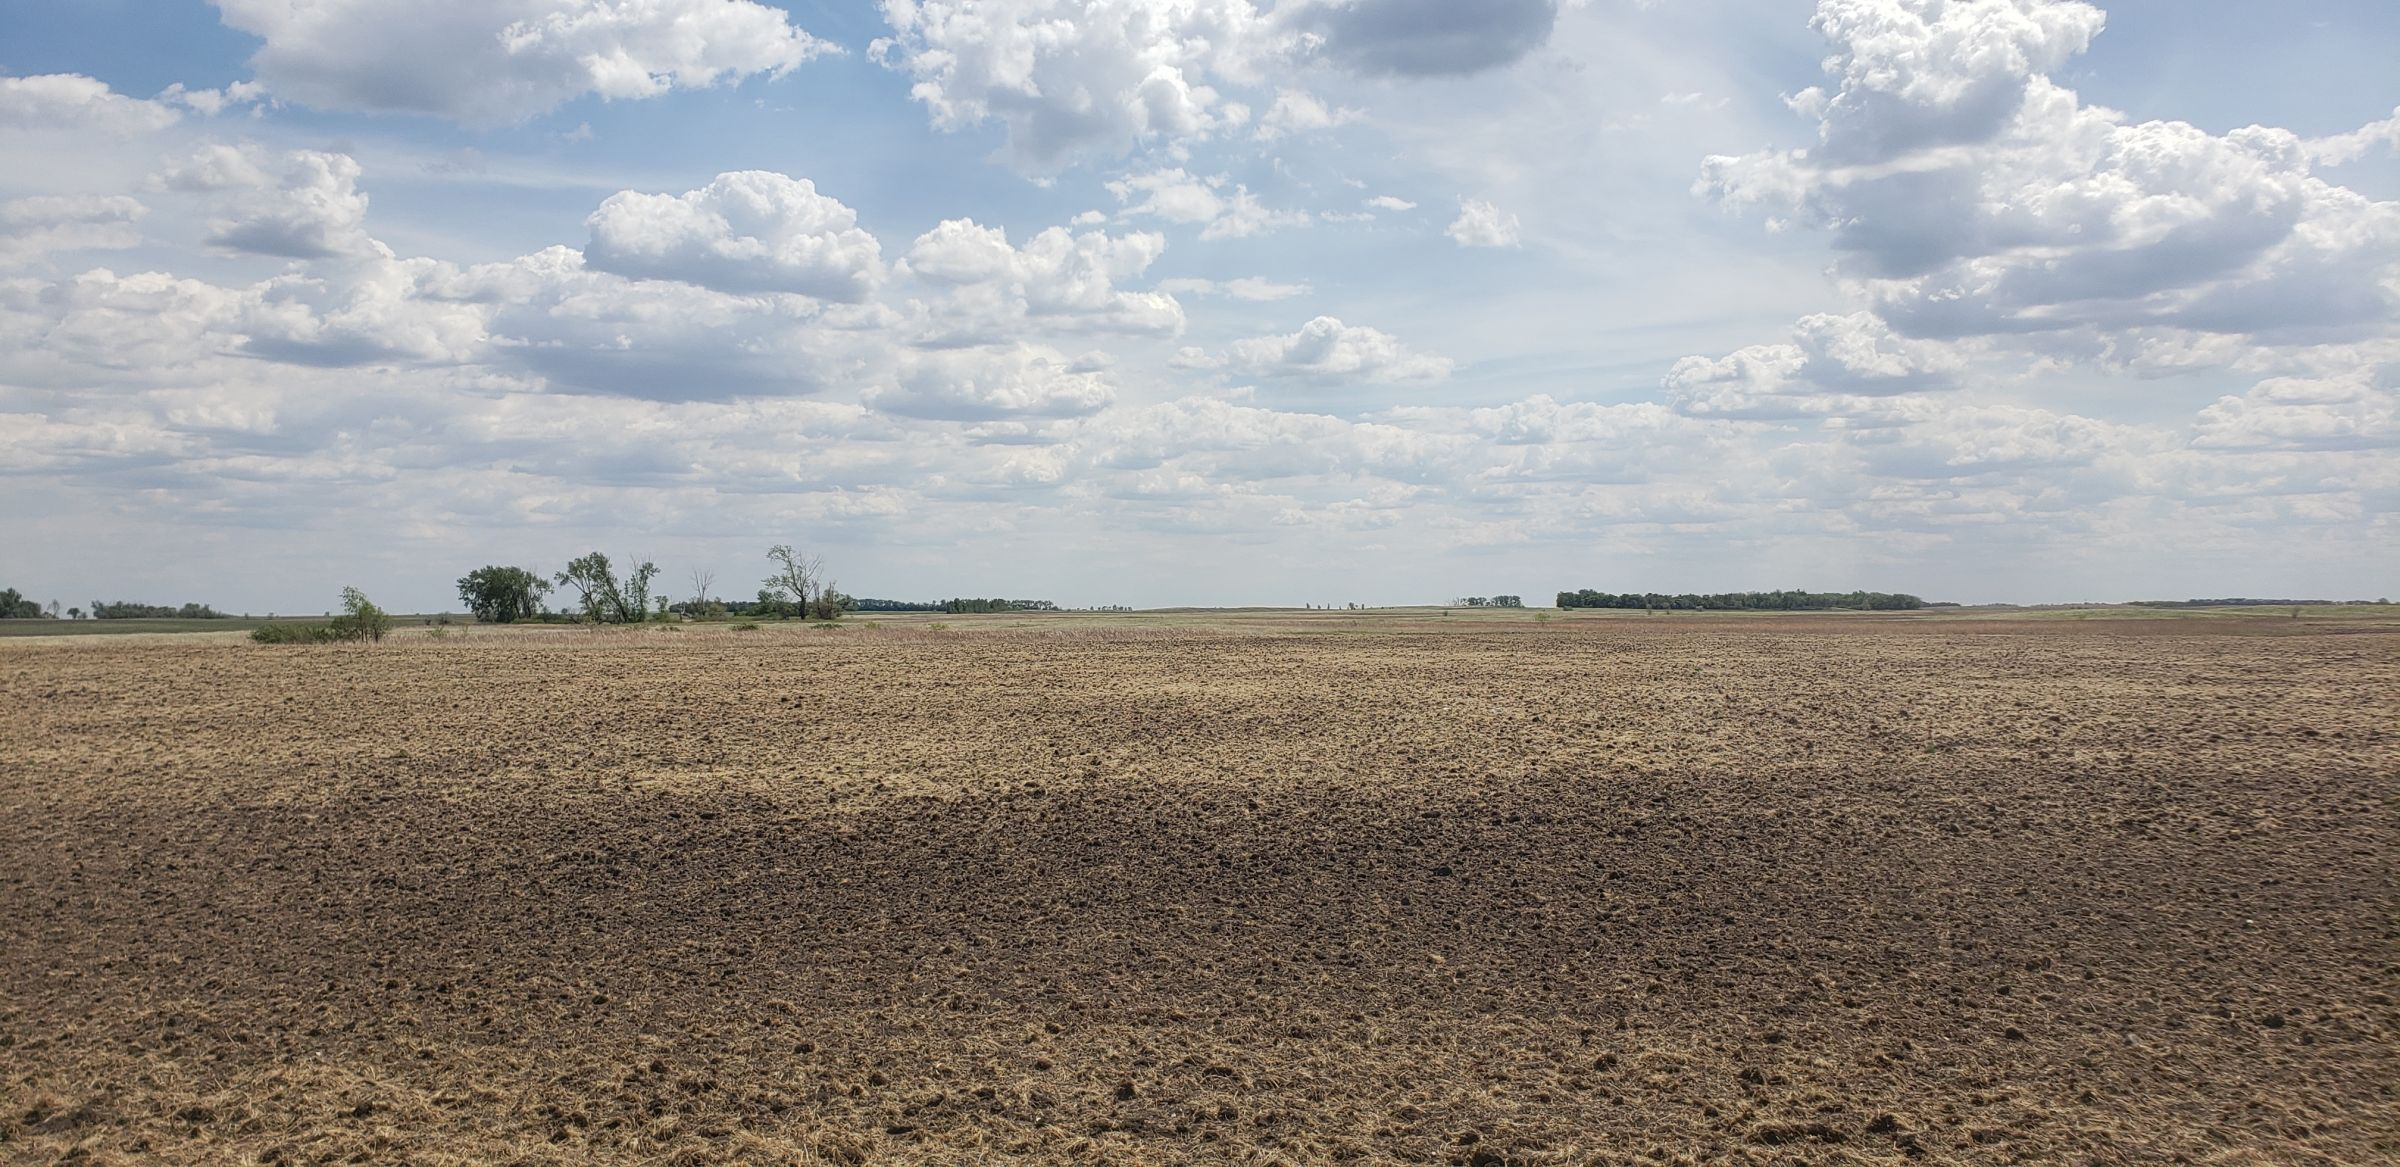 auctions-cass-county-north-dakota-320-acres-listing-number-15590-0-2021-06-22-191128.jpg